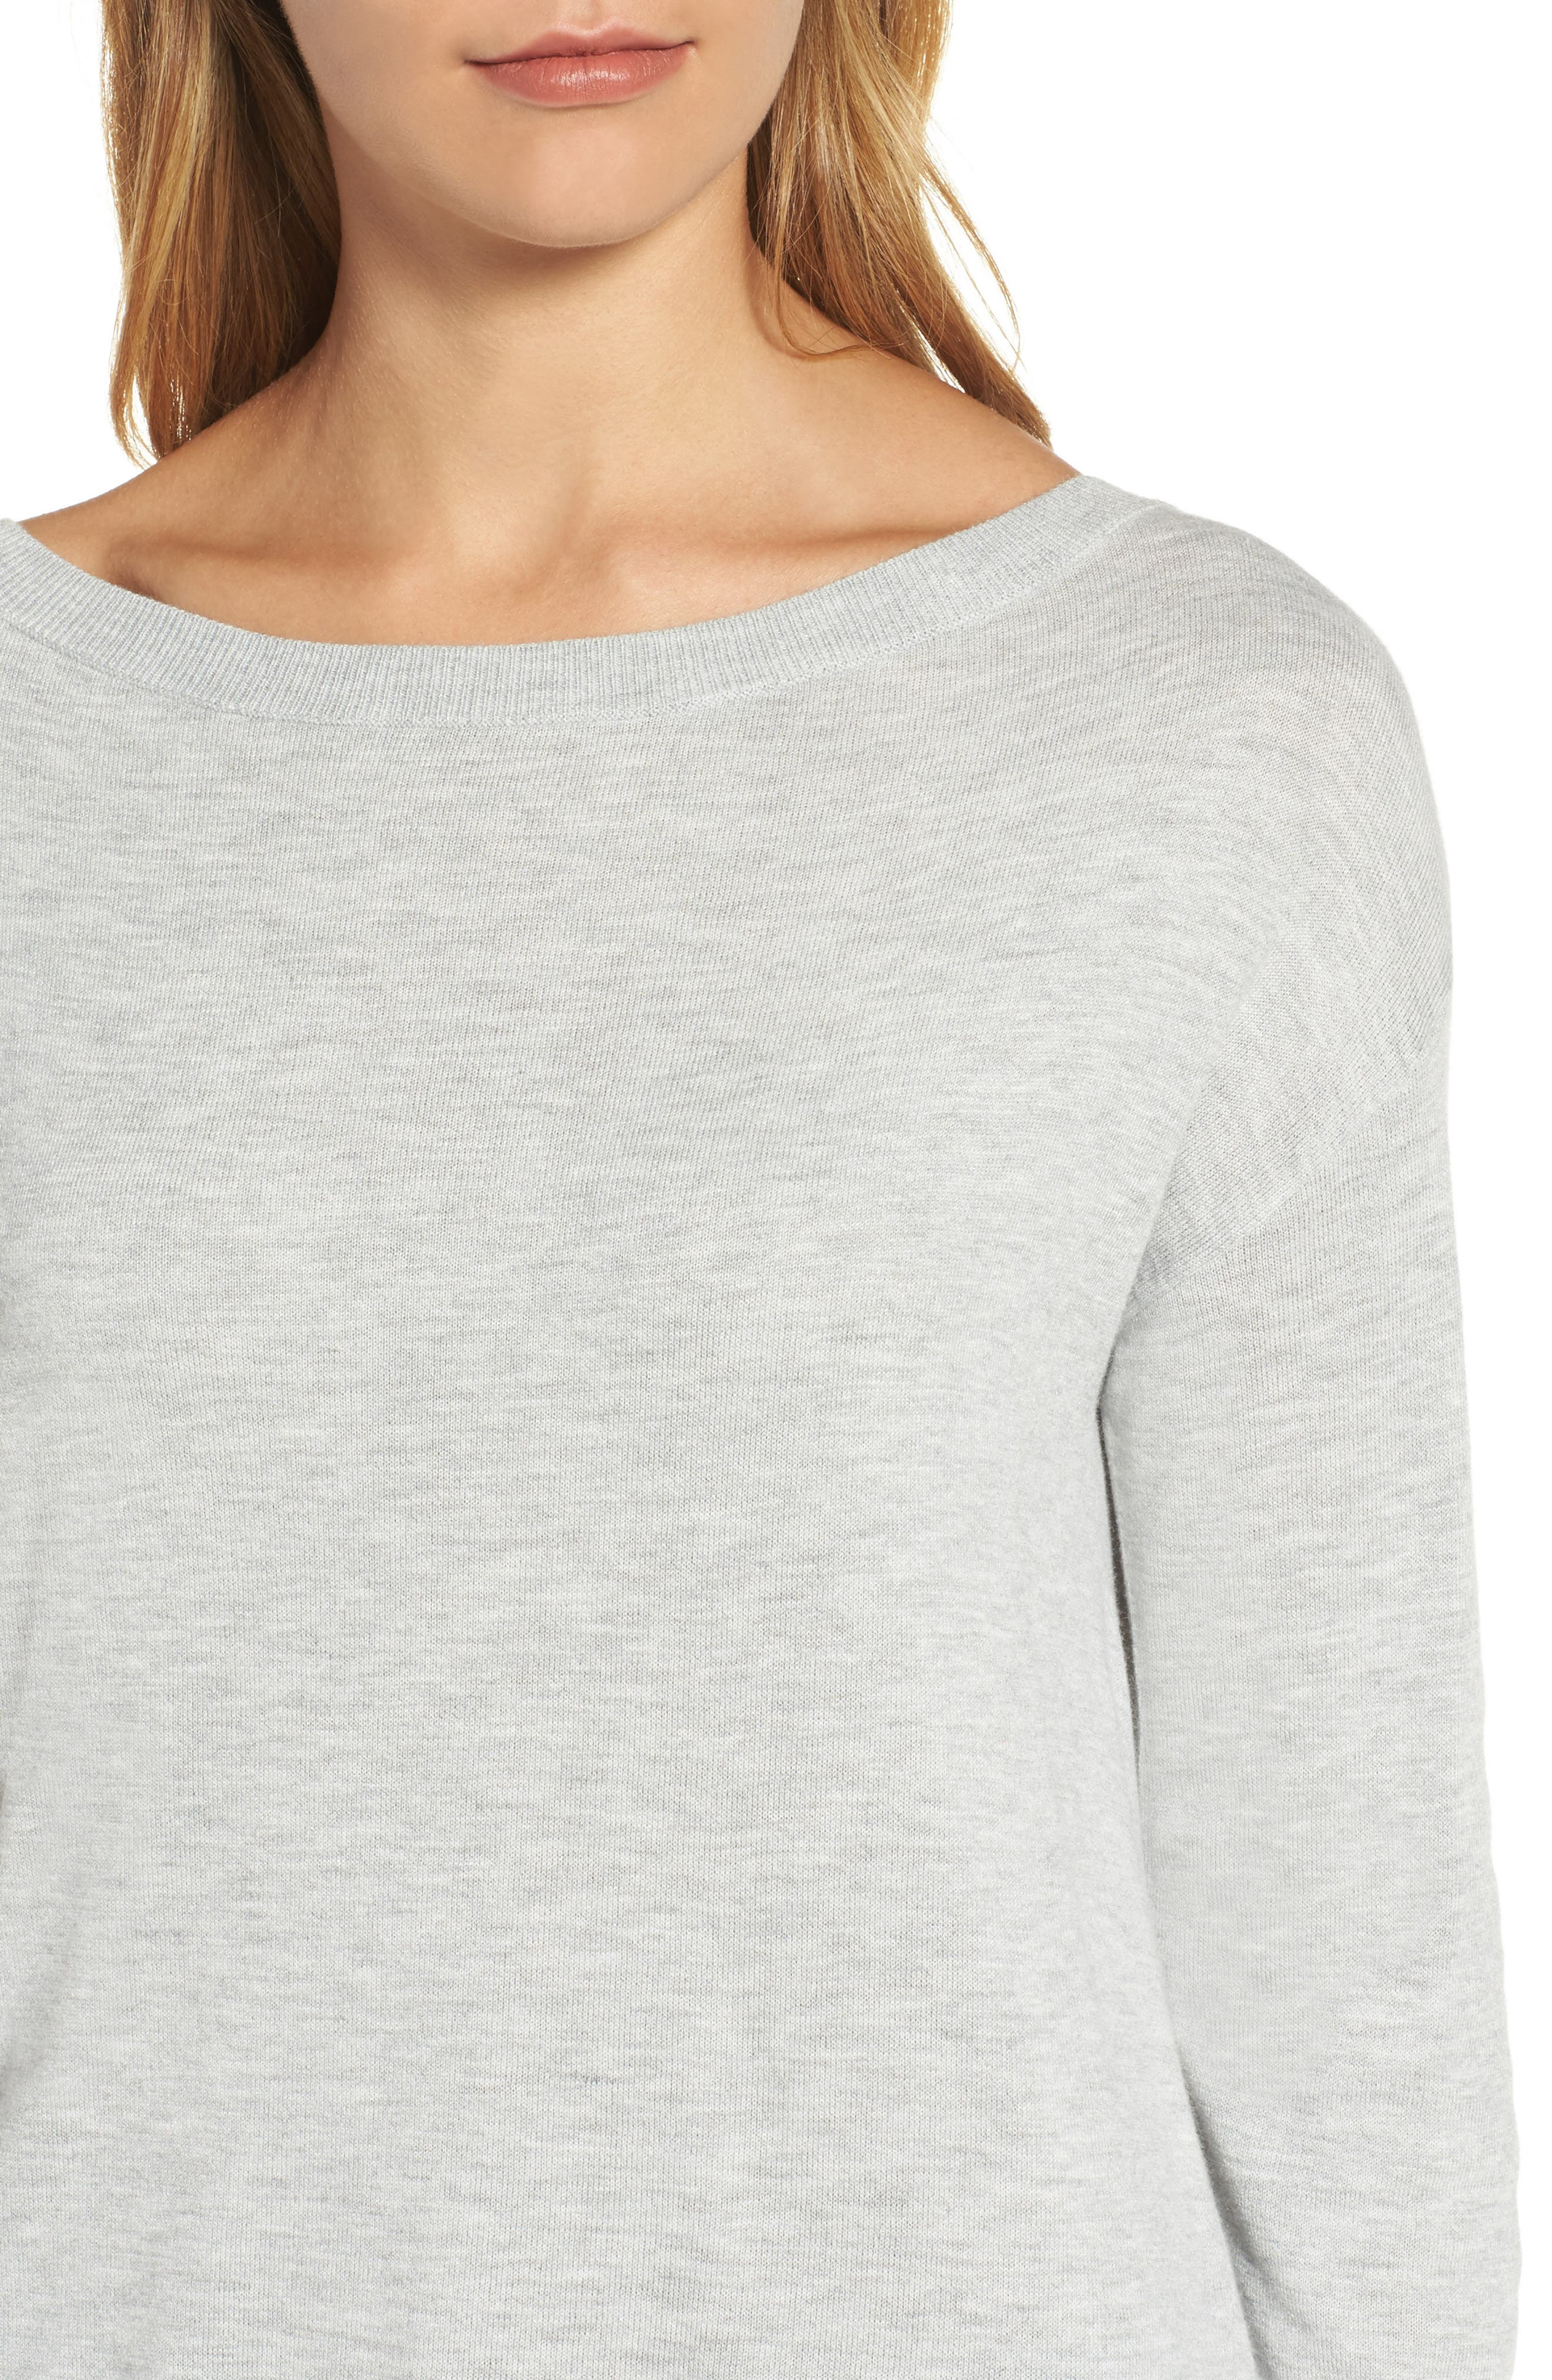 Boatneck Tunic Sweater,                             Alternate thumbnail 5, color,                             Heather Light Grey